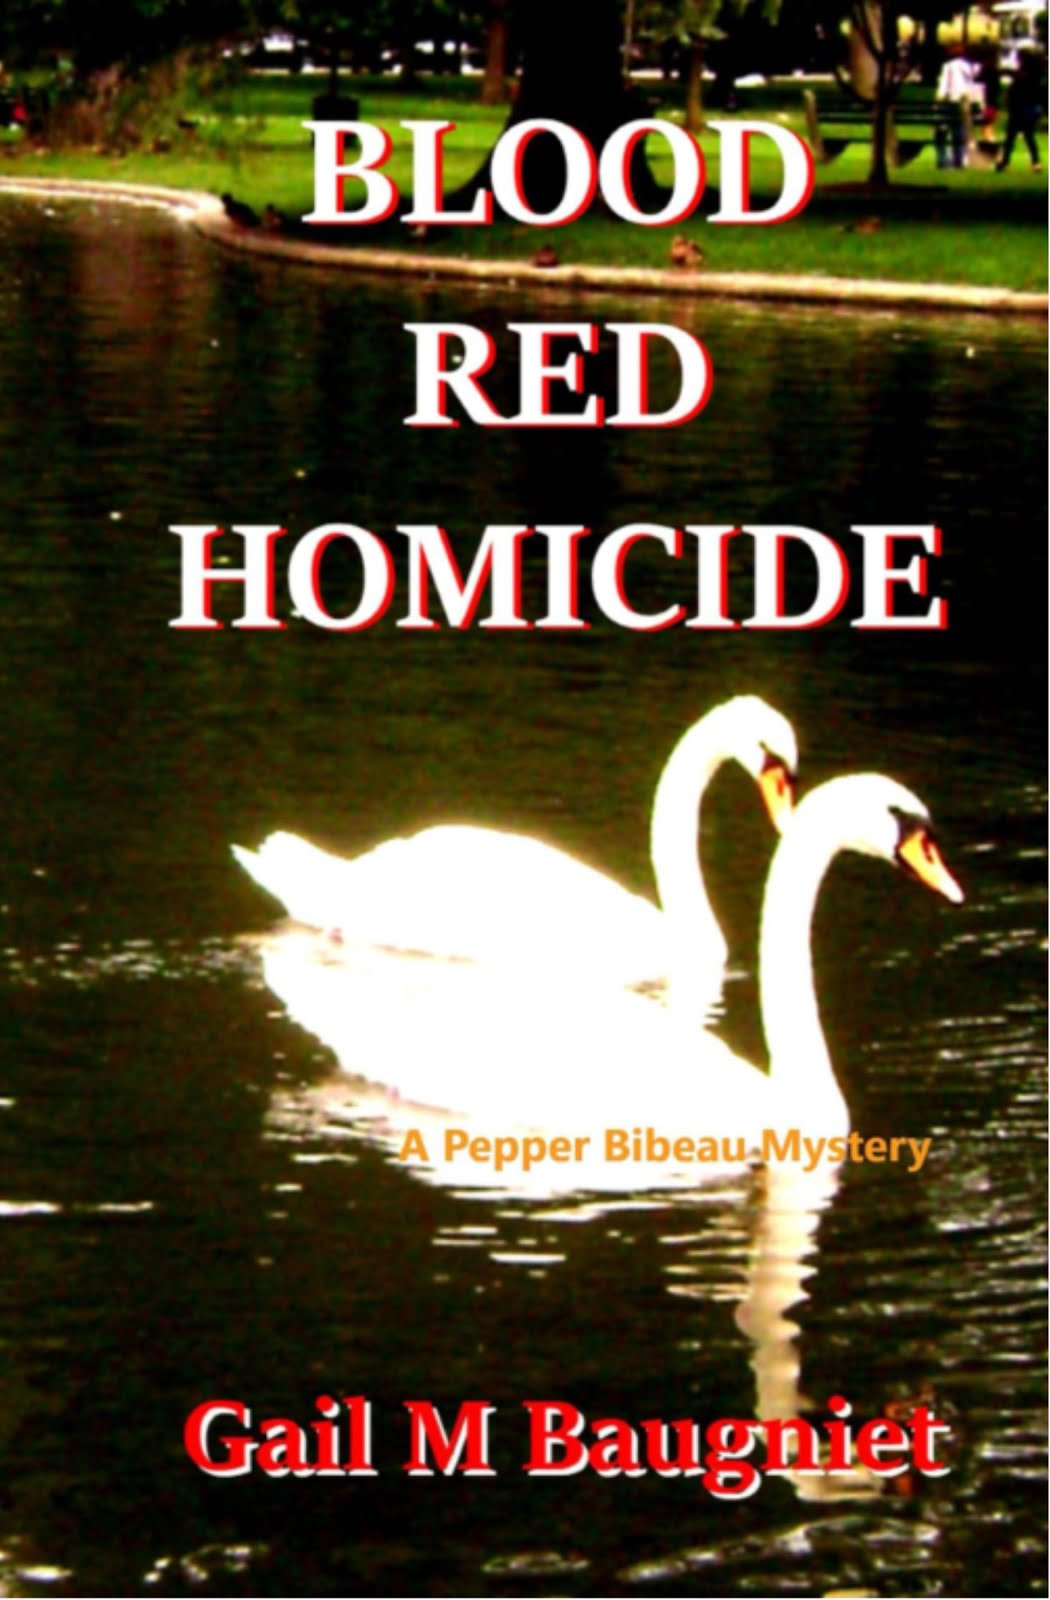 **** RED HOT MYSTERY ****  SET IN A SWINGING TOWN